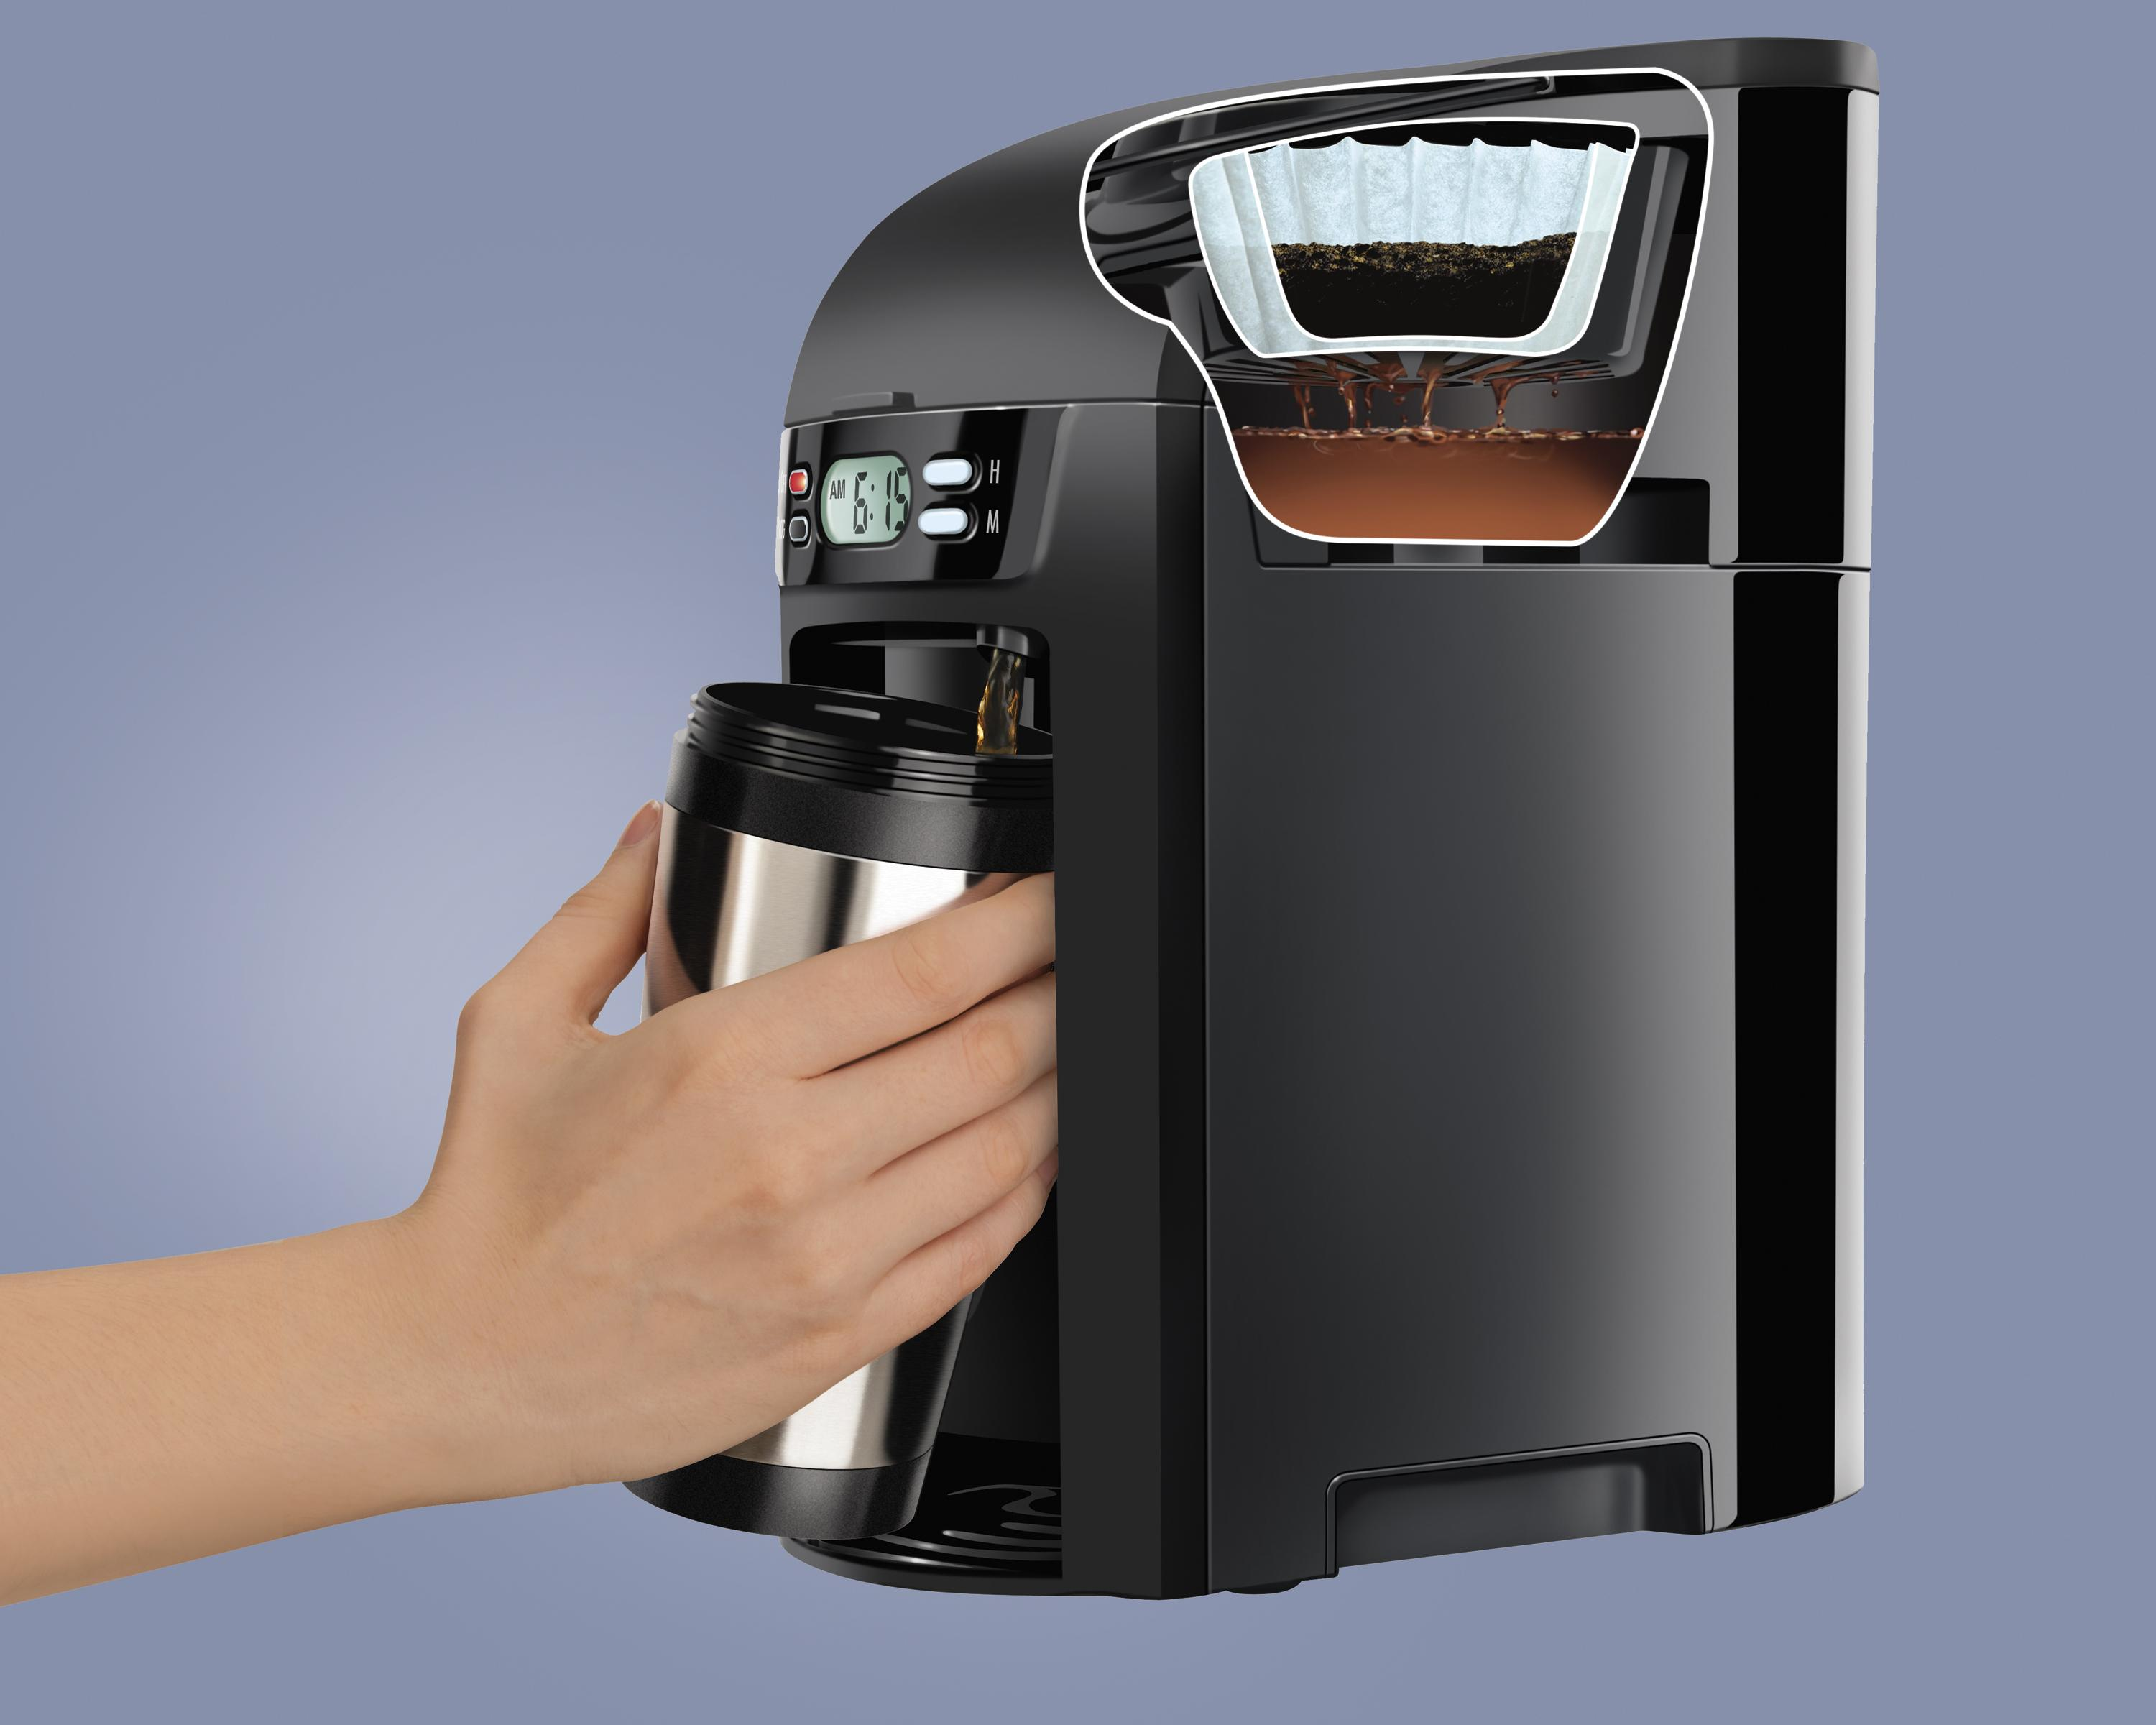 Coffee Maker By Hand : Amazon.com: Hamilton Beach 6-Cup Coffee Maker, Programmable Brewstation Dispensing Coffee ...